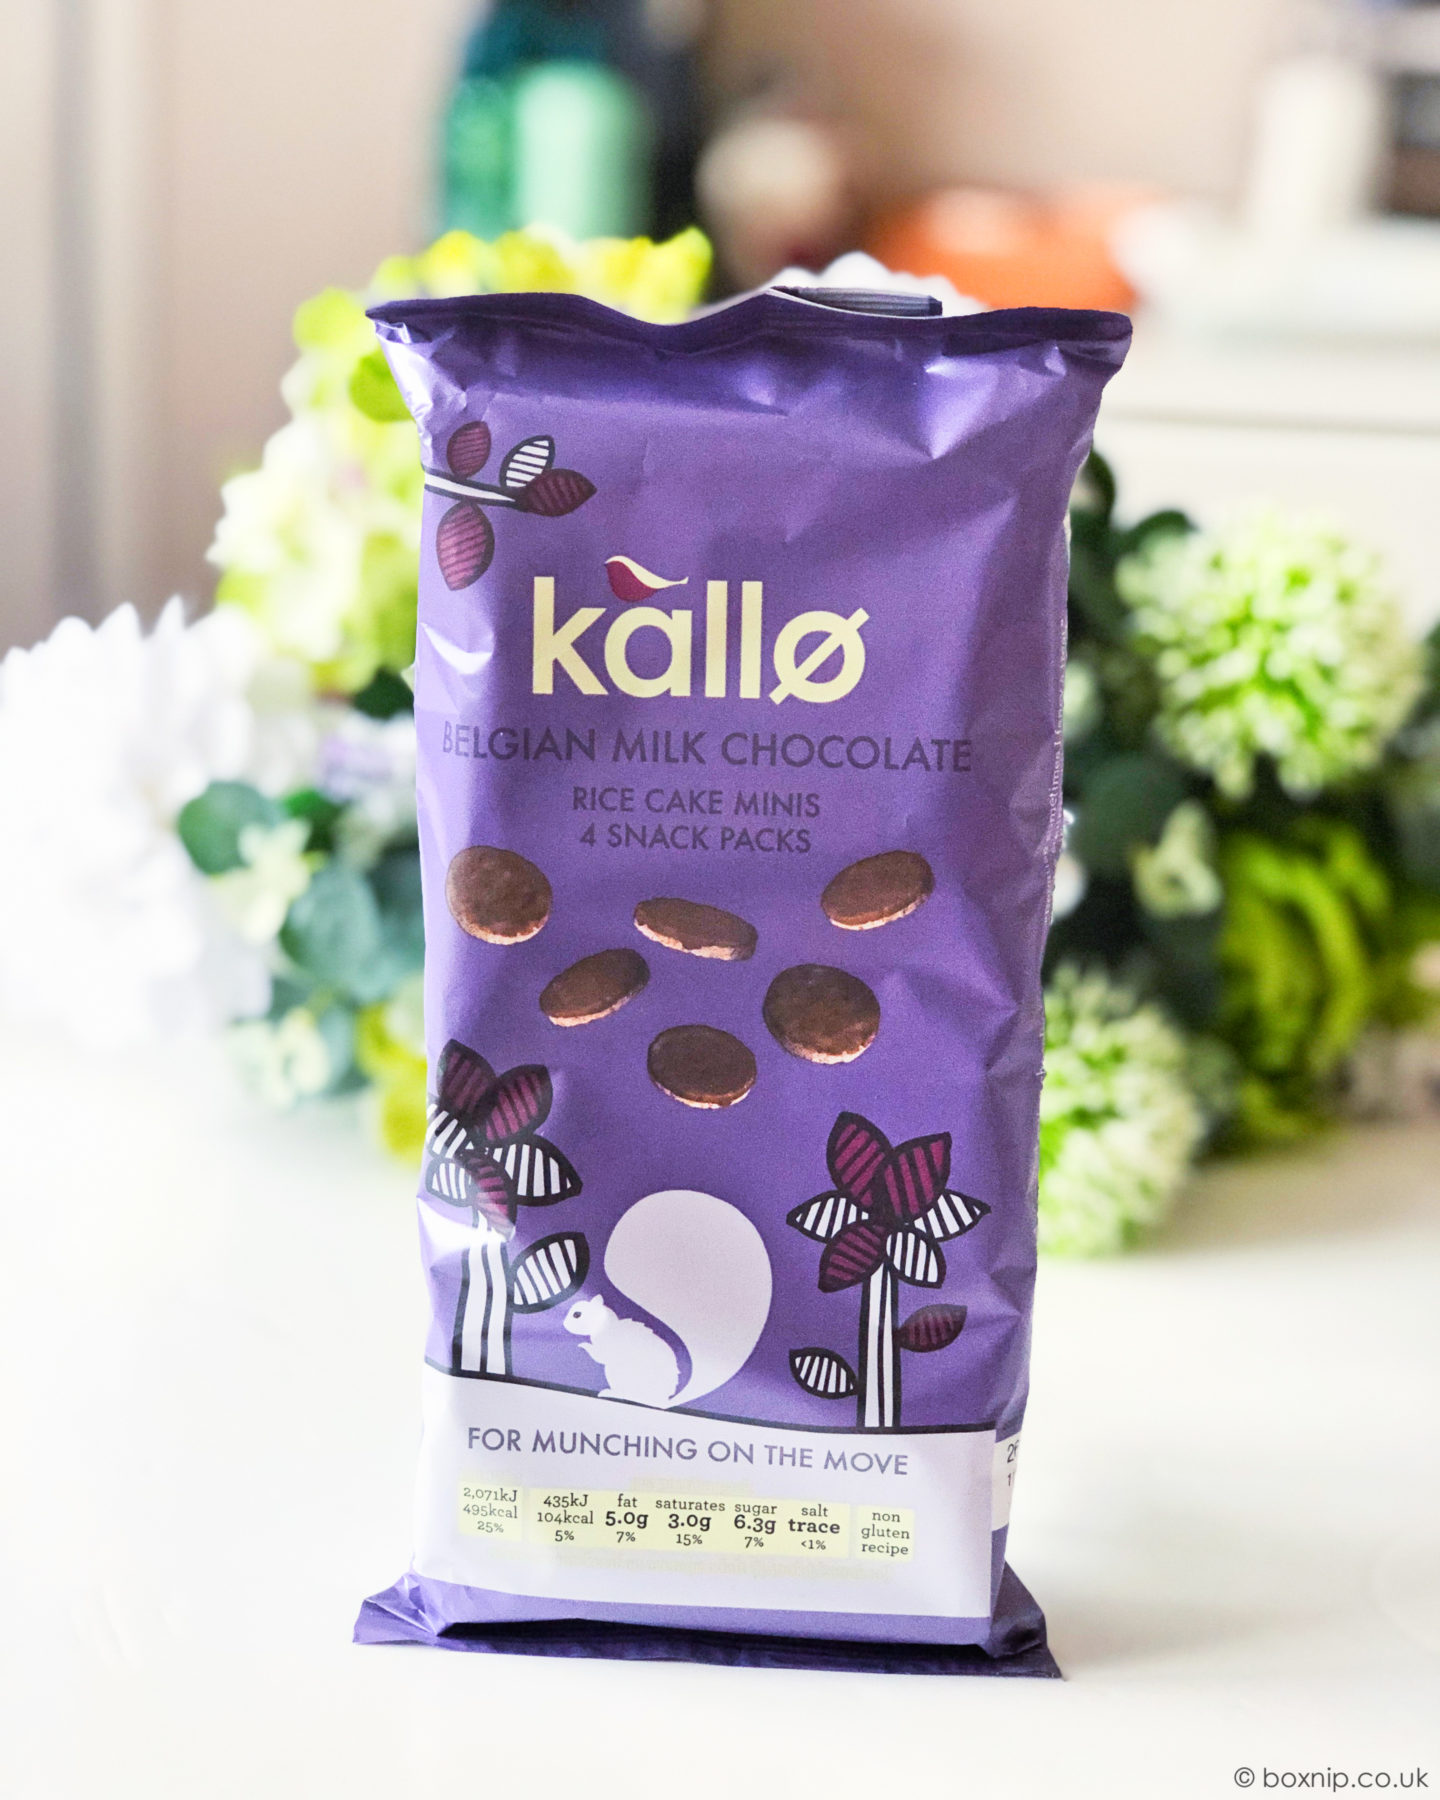 Kallo Belgium Milk Chocolate Rice Cake Minis - July 2019 Degusta Box